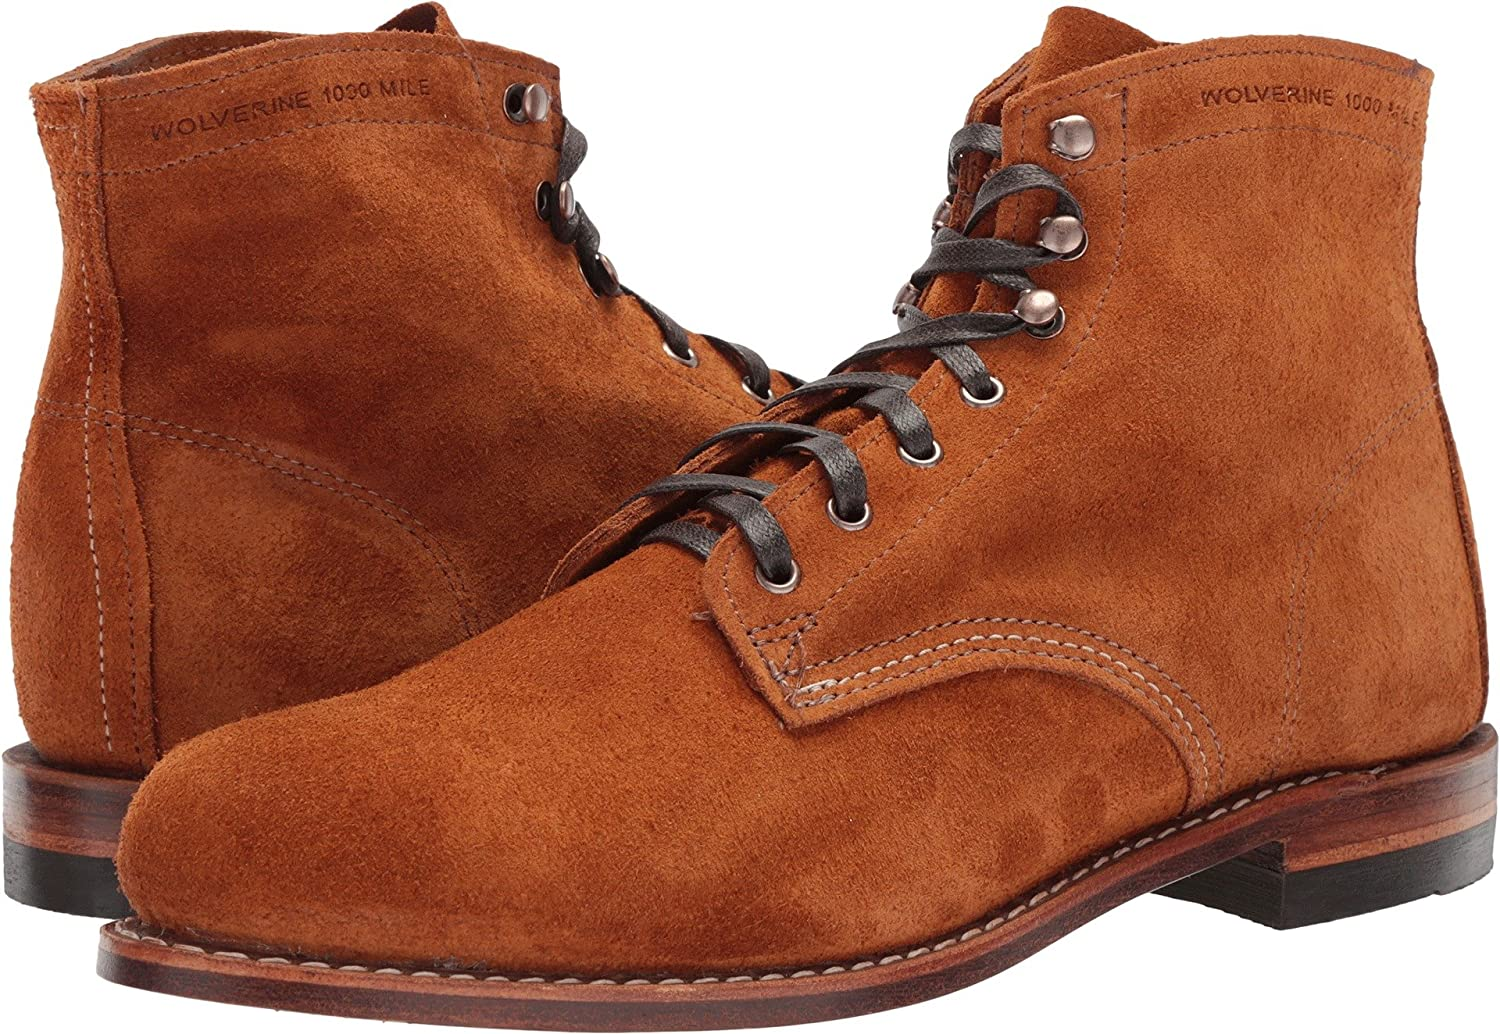 Wolverine 1000 Mile Men's Wolverine 1000 Mile Boots B01N6X4O0H 13 D(M) US|Amber Suede